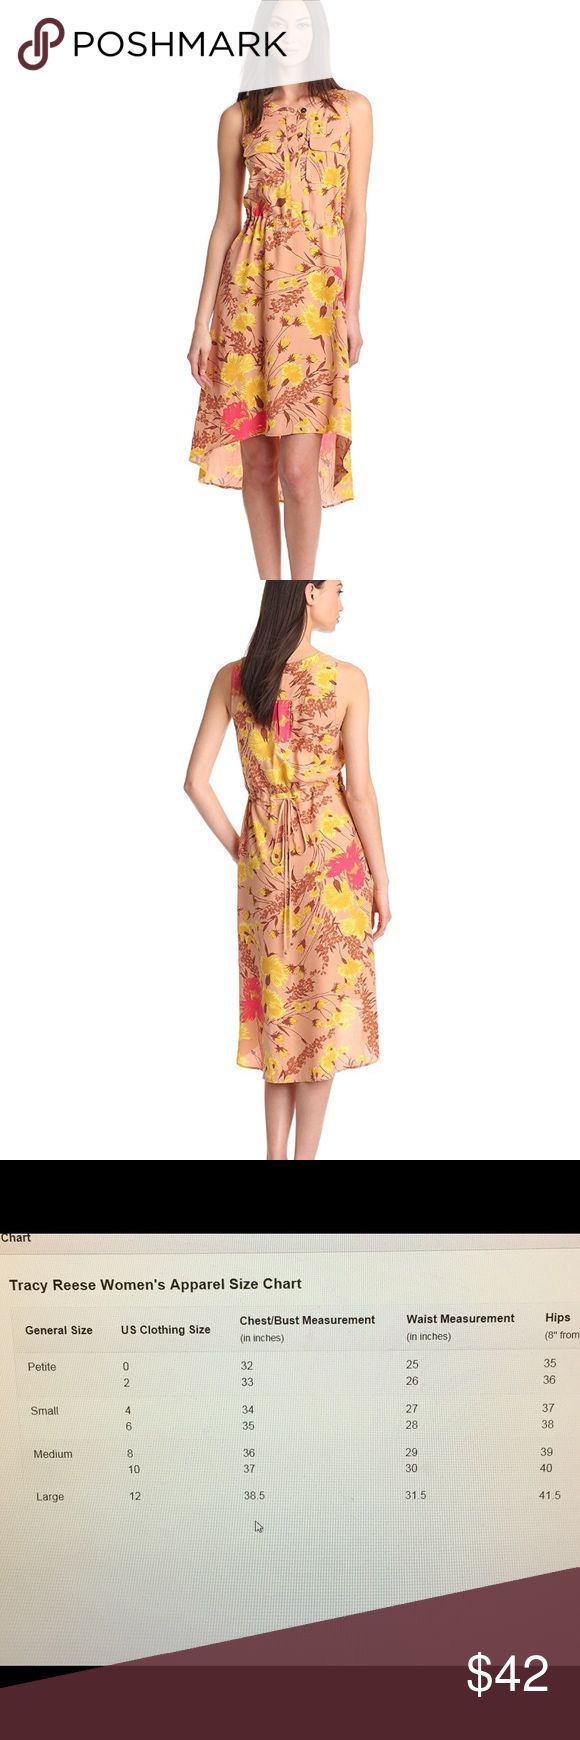 NWT  Plenty - Tracy Reese Wild Orchid Silk Dress This Anthropologie Plenty by Tracy Reese floral dress is brand new with tags. Fits dress size 0-2. Size P-XS.                                                               100% Silk Dry Clean Only Button front detailing Optional cinch waist drawstring in back High low hem Anthropologie Dresses Midi